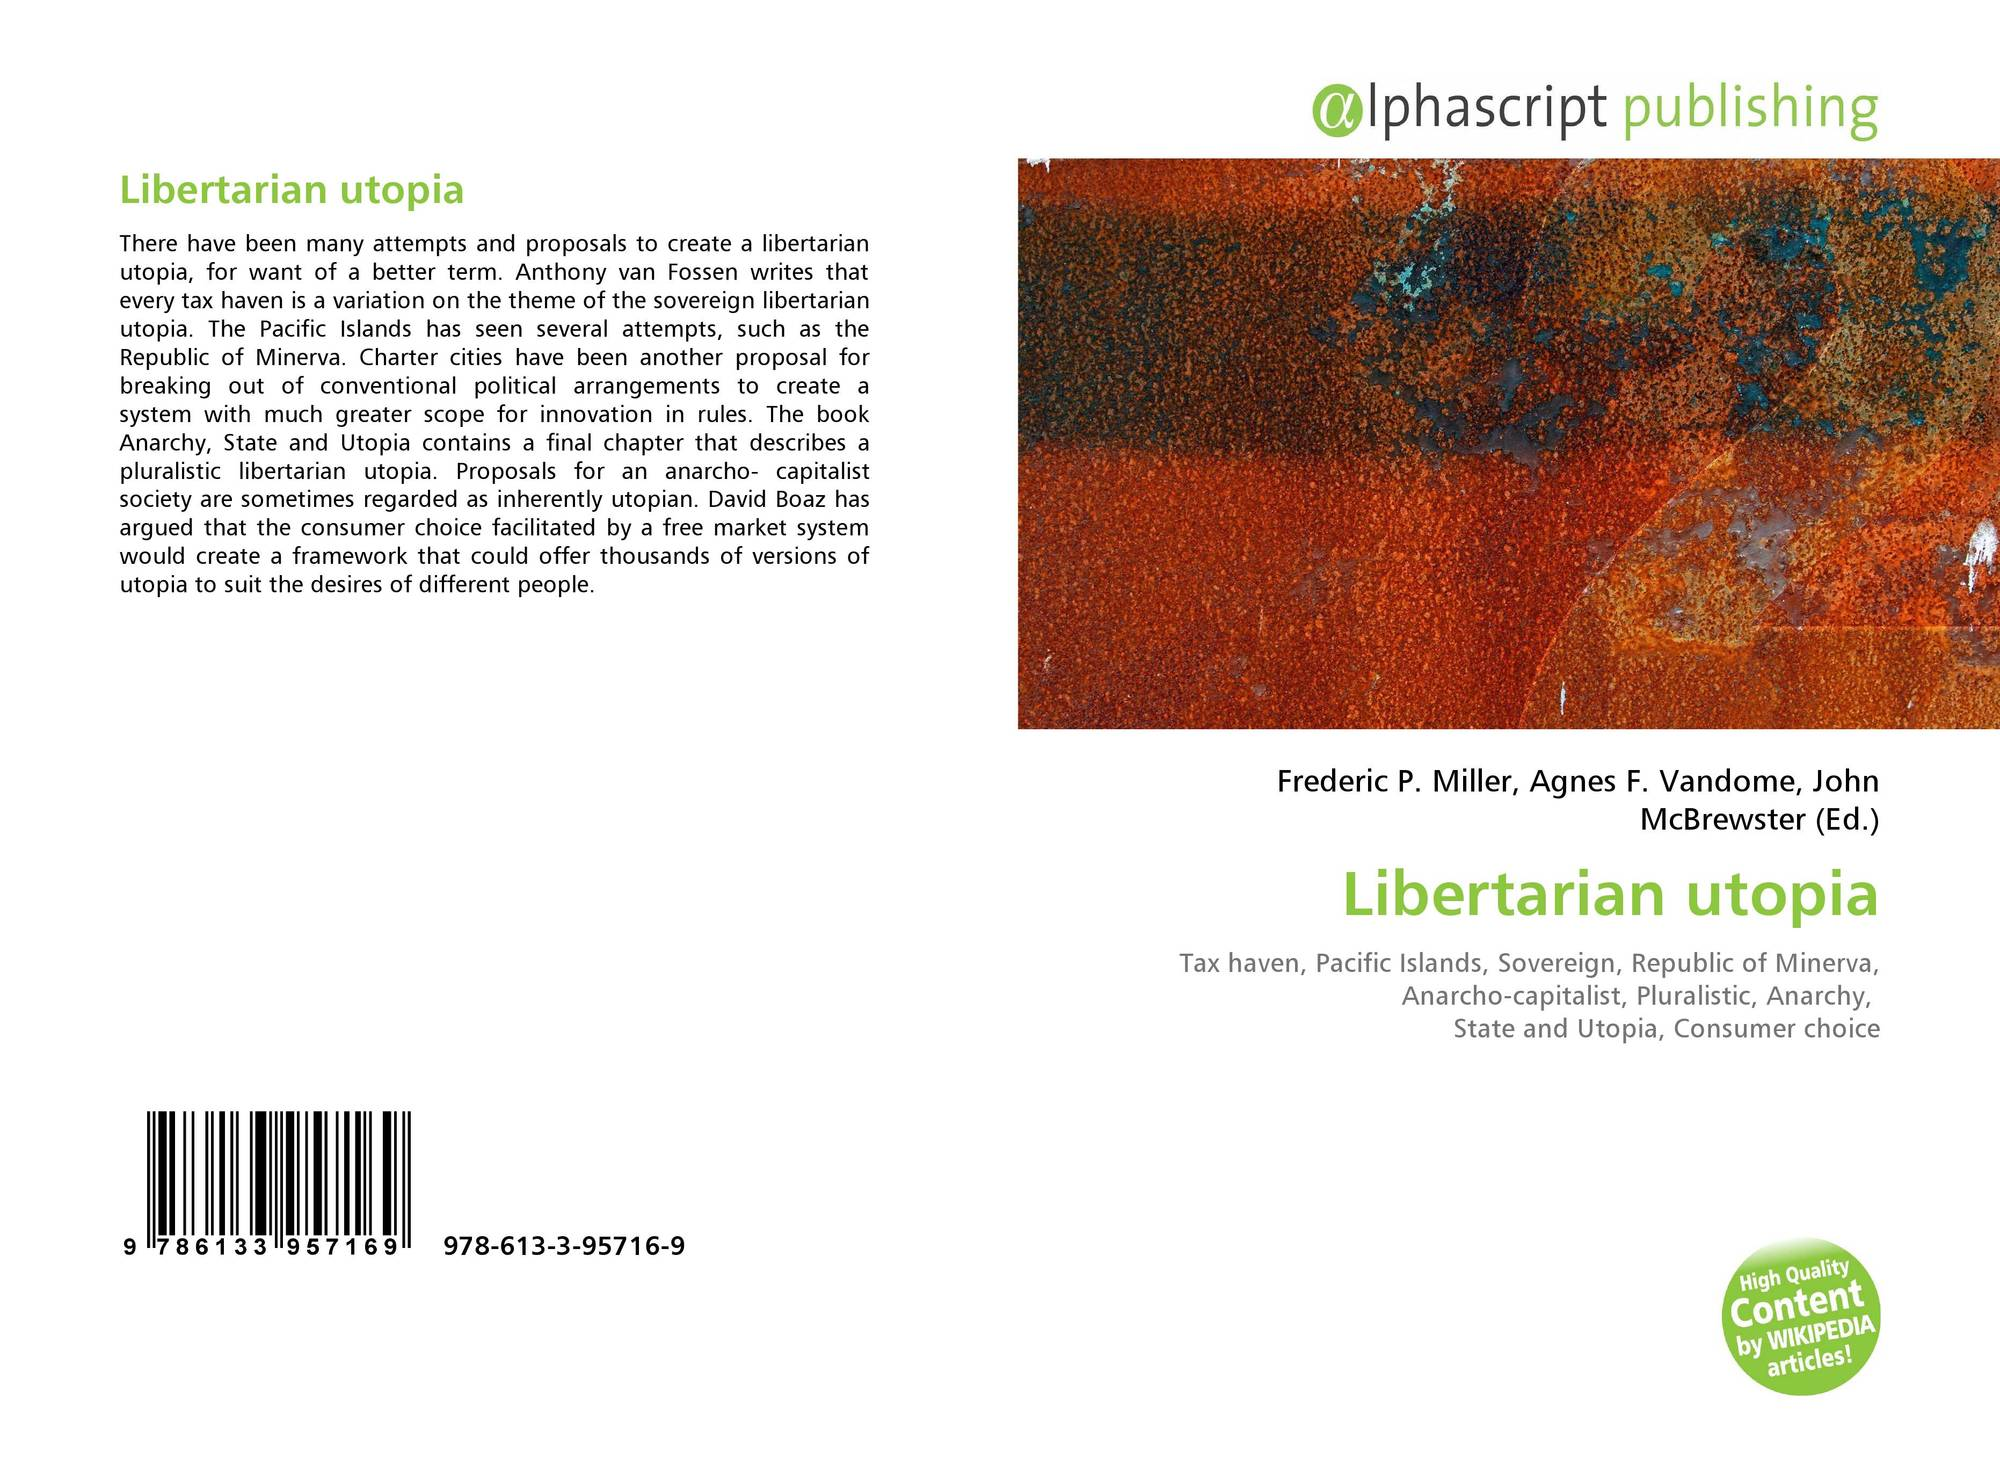 an analysis of libertarian anarchism in political philosophies Political philosophy is dominated by a myth, the myth of the necessity of the state the state is considered necessary for the provision of many things, but primarily for peace and security gerard casey argues that social order can be spontaneously generated, that such spontaneous order is the norm.